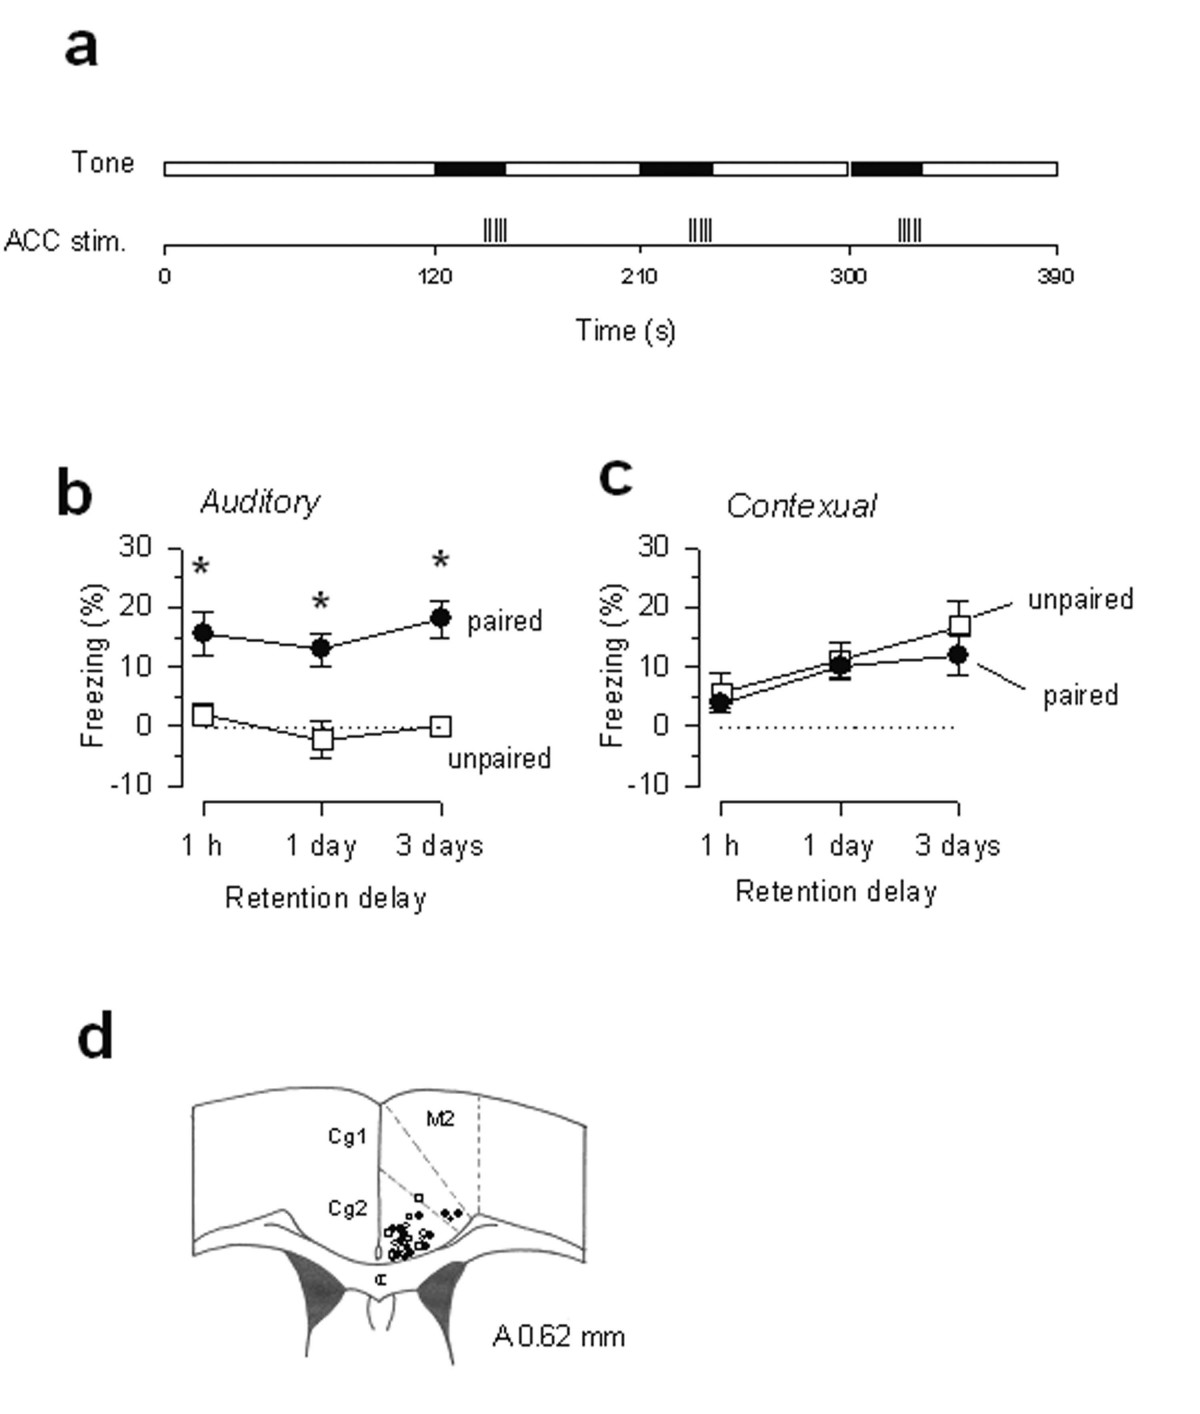 http://static-content.springer.com/image/art%3A10.1186%2F1744-8069-1-6/MediaObjects/12990_2004_Article_6_Fig2_HTML.jpg